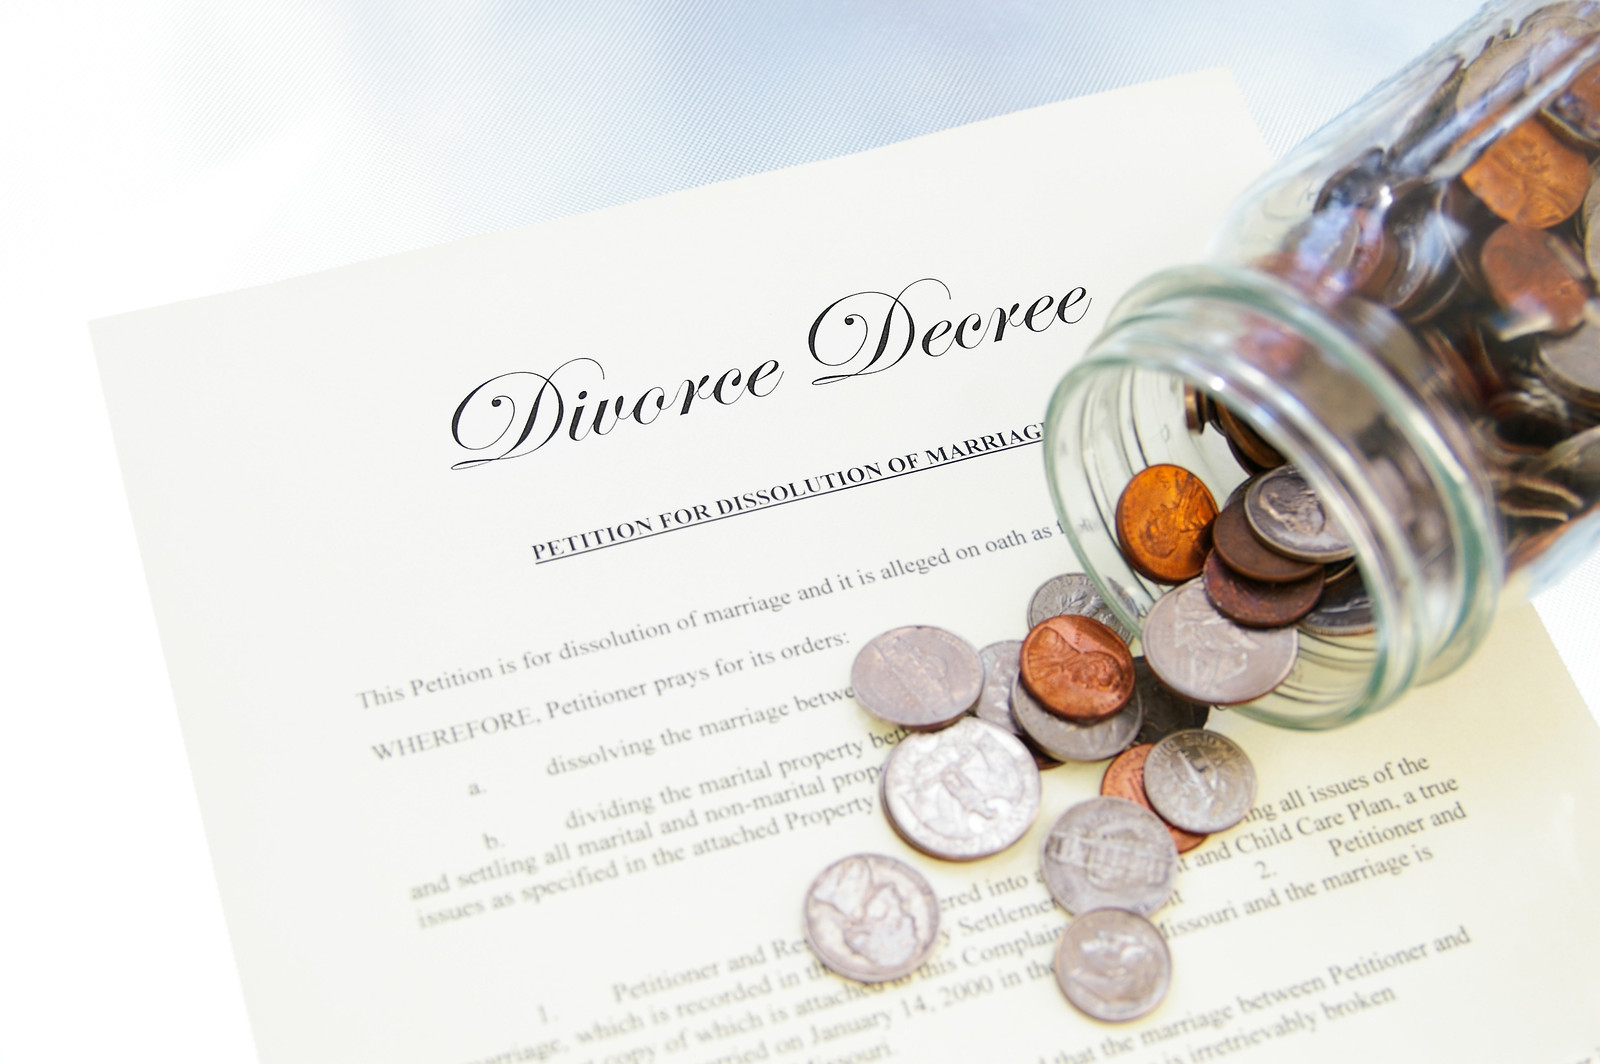 Father's Can Fight Alimony